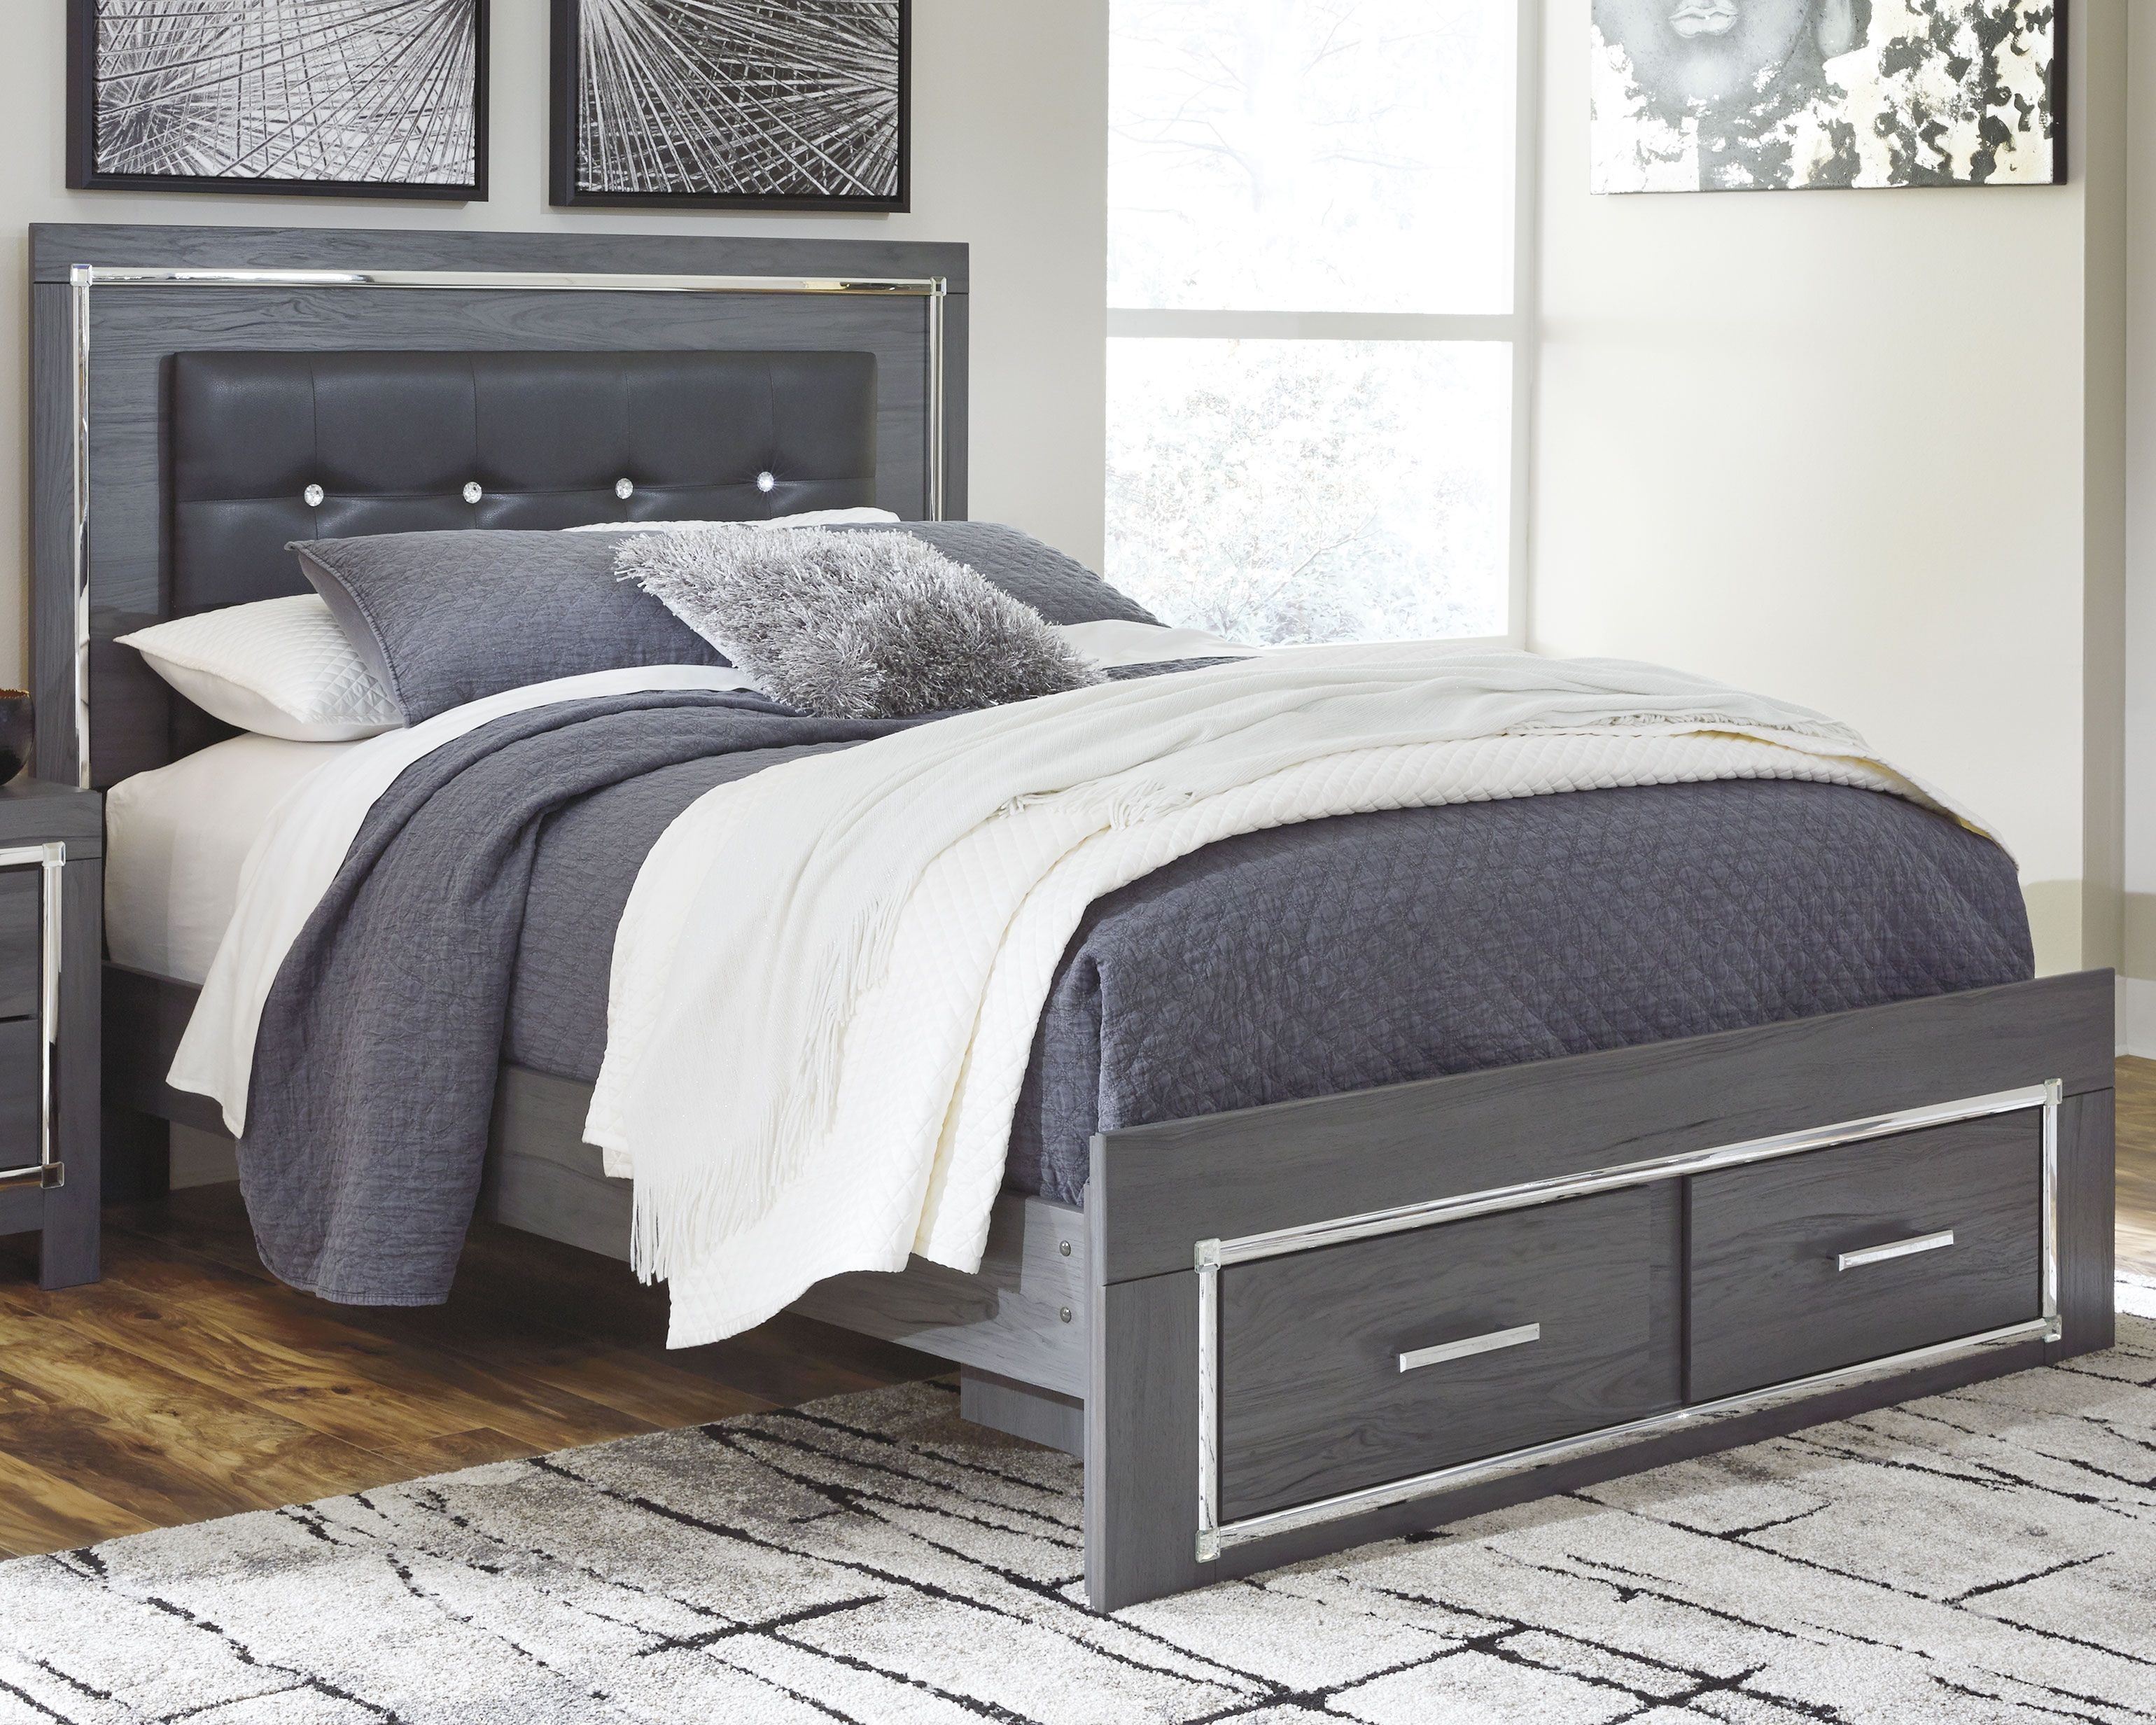 Lodanna Queen Panel Bed With 2 Storage Drawers Panel Headboard